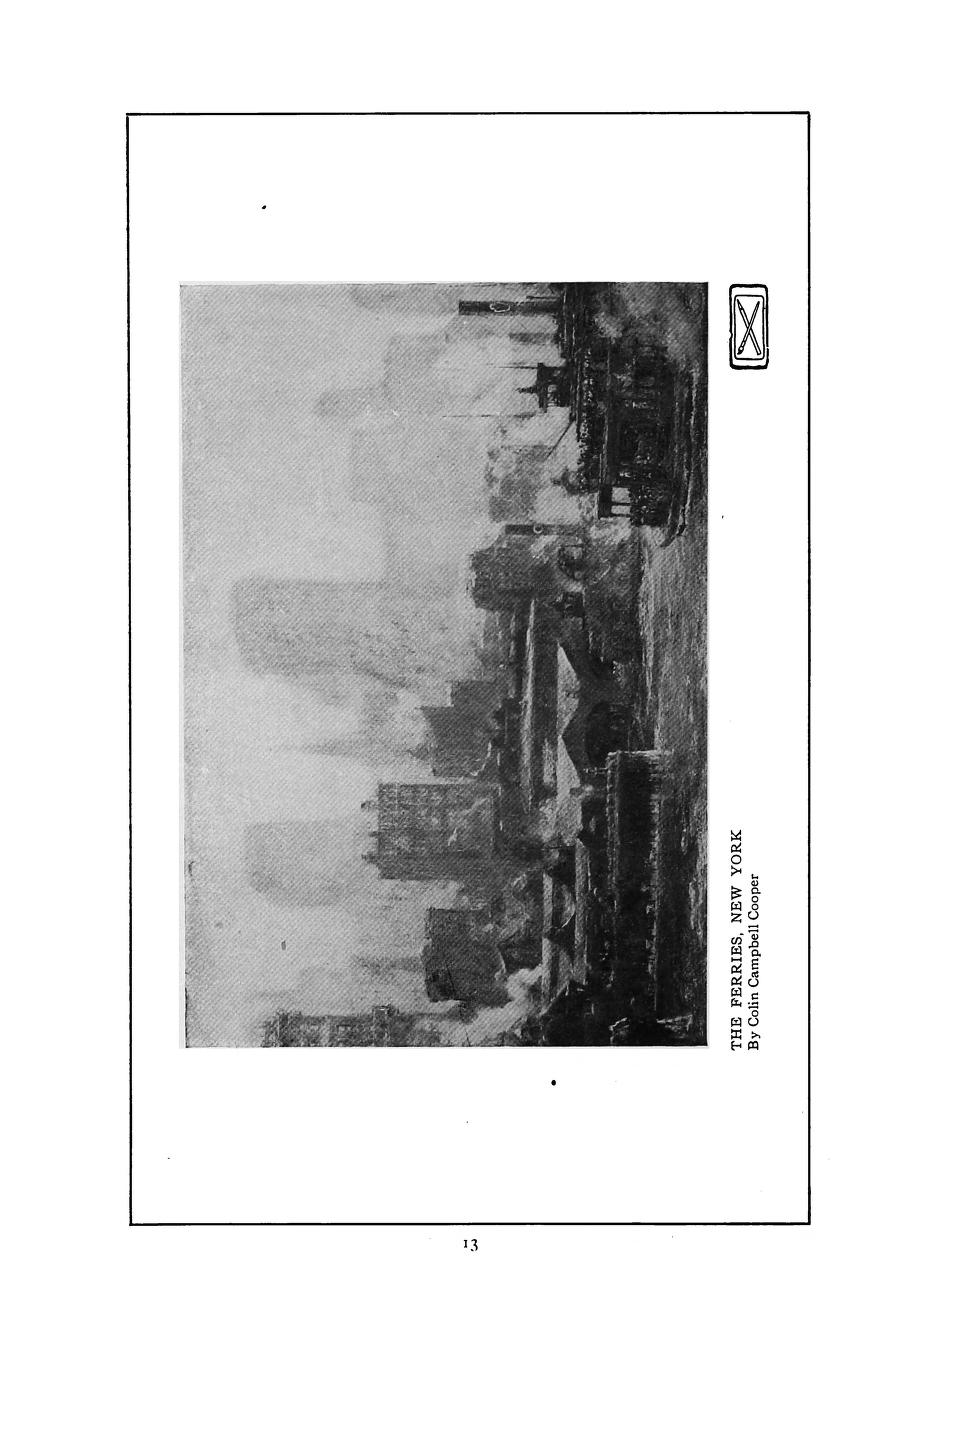 "Brush and Pencil, Chicago, IL, ""The Fine Arts at Worcester"" by George C. Henderson, January, 1905, Volume 15, Number 1, page 12-13, 15-17, 19-20, not illustrated"